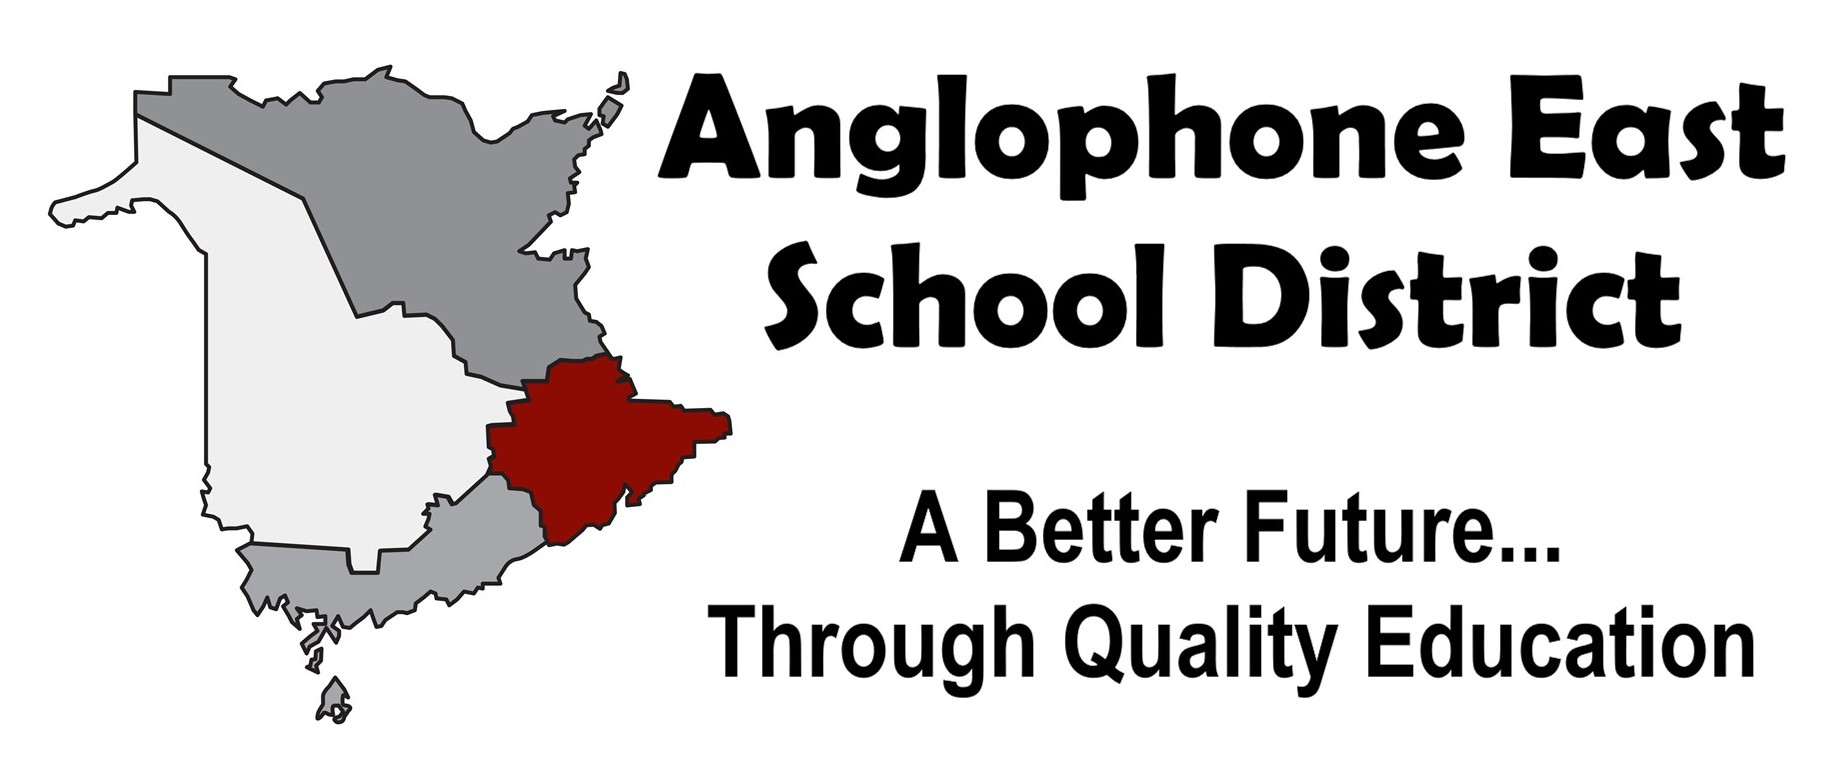 Anglophone East School District